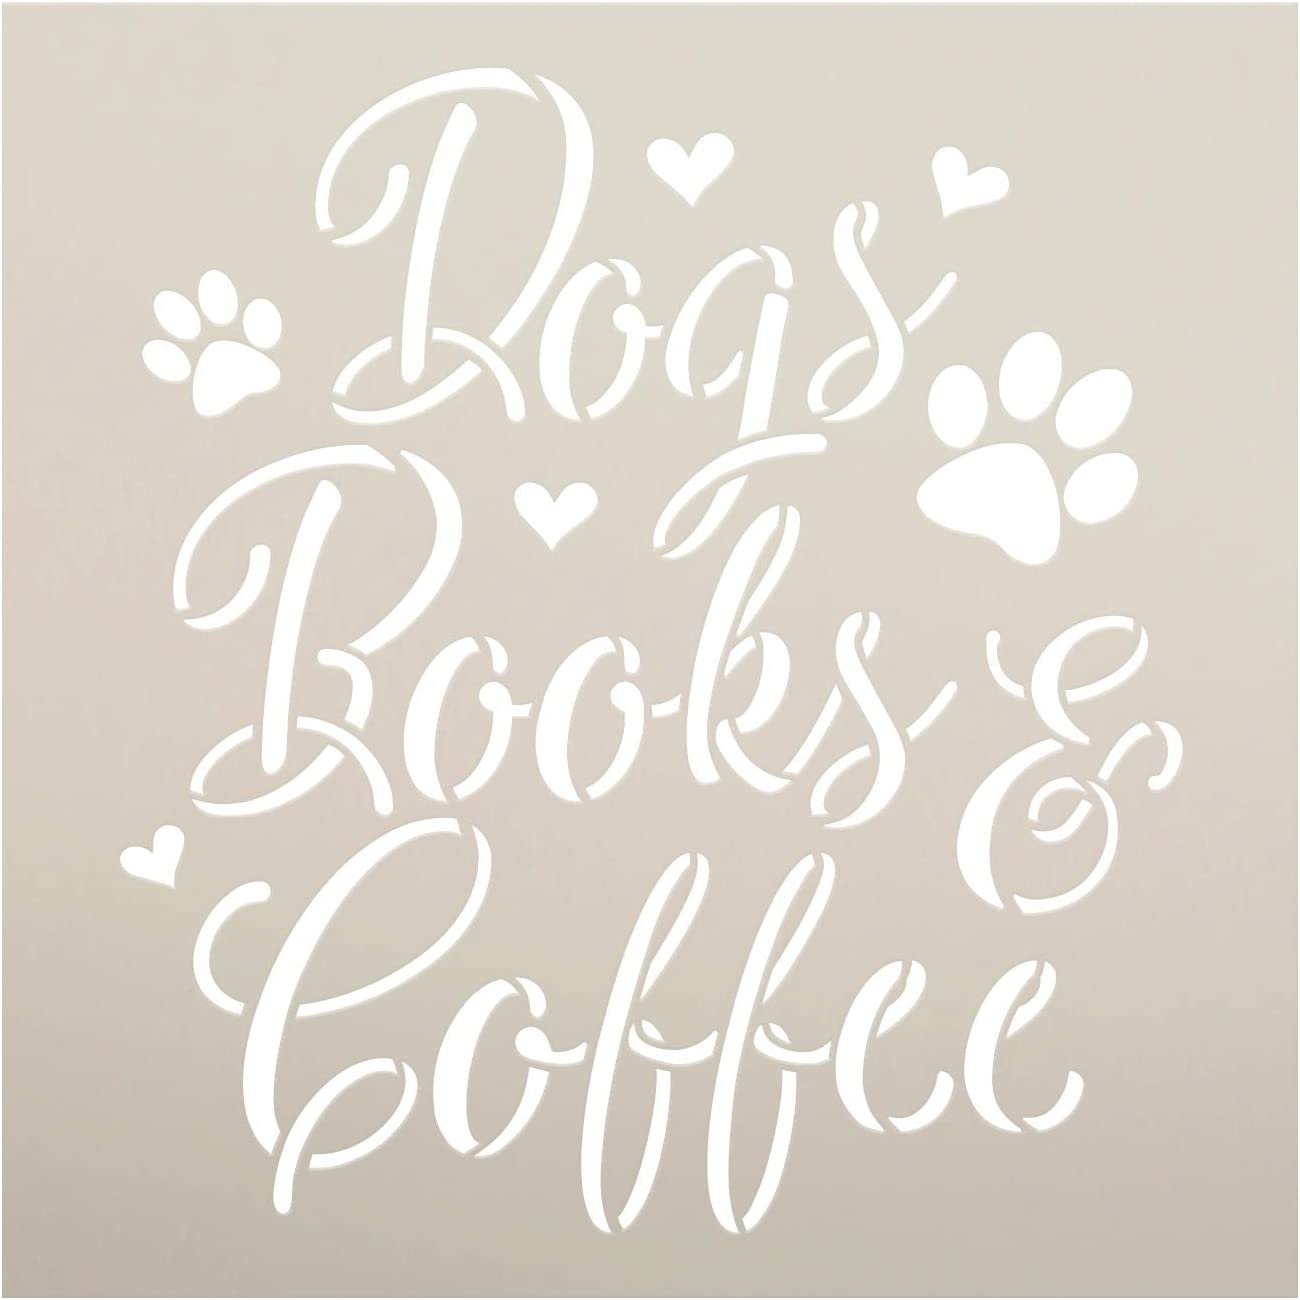 Dogs Books & Coffee Stencil by StudioR12 | DIY Animal Lover Read Home Decor Gift | Craft & Paint Wood Sign Reusable Mylar Template | Select Size